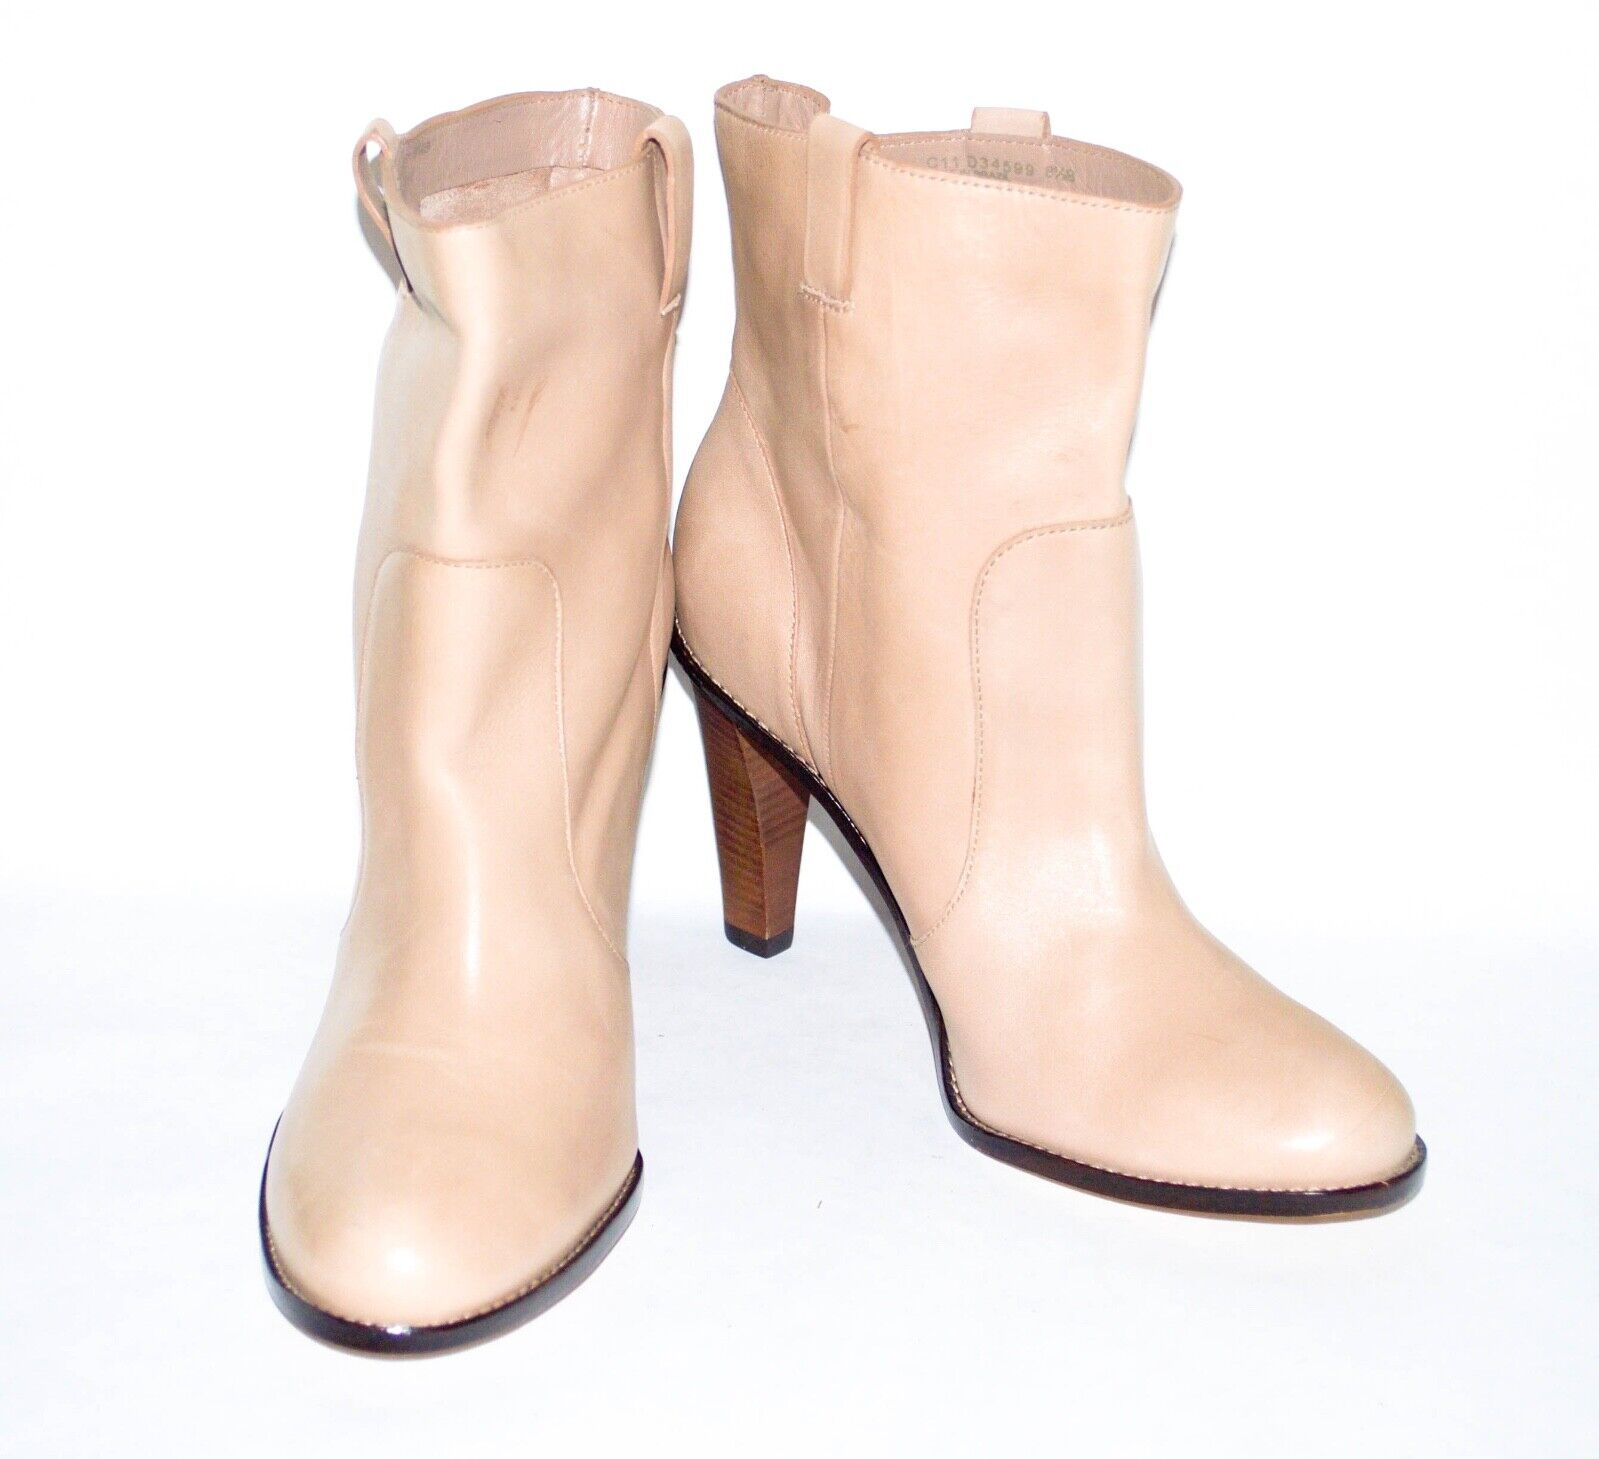 f0642b8ae45 Cole Haan 'Air Kendall' Leather Ankle Boot In Natural. US Size 8.5 B